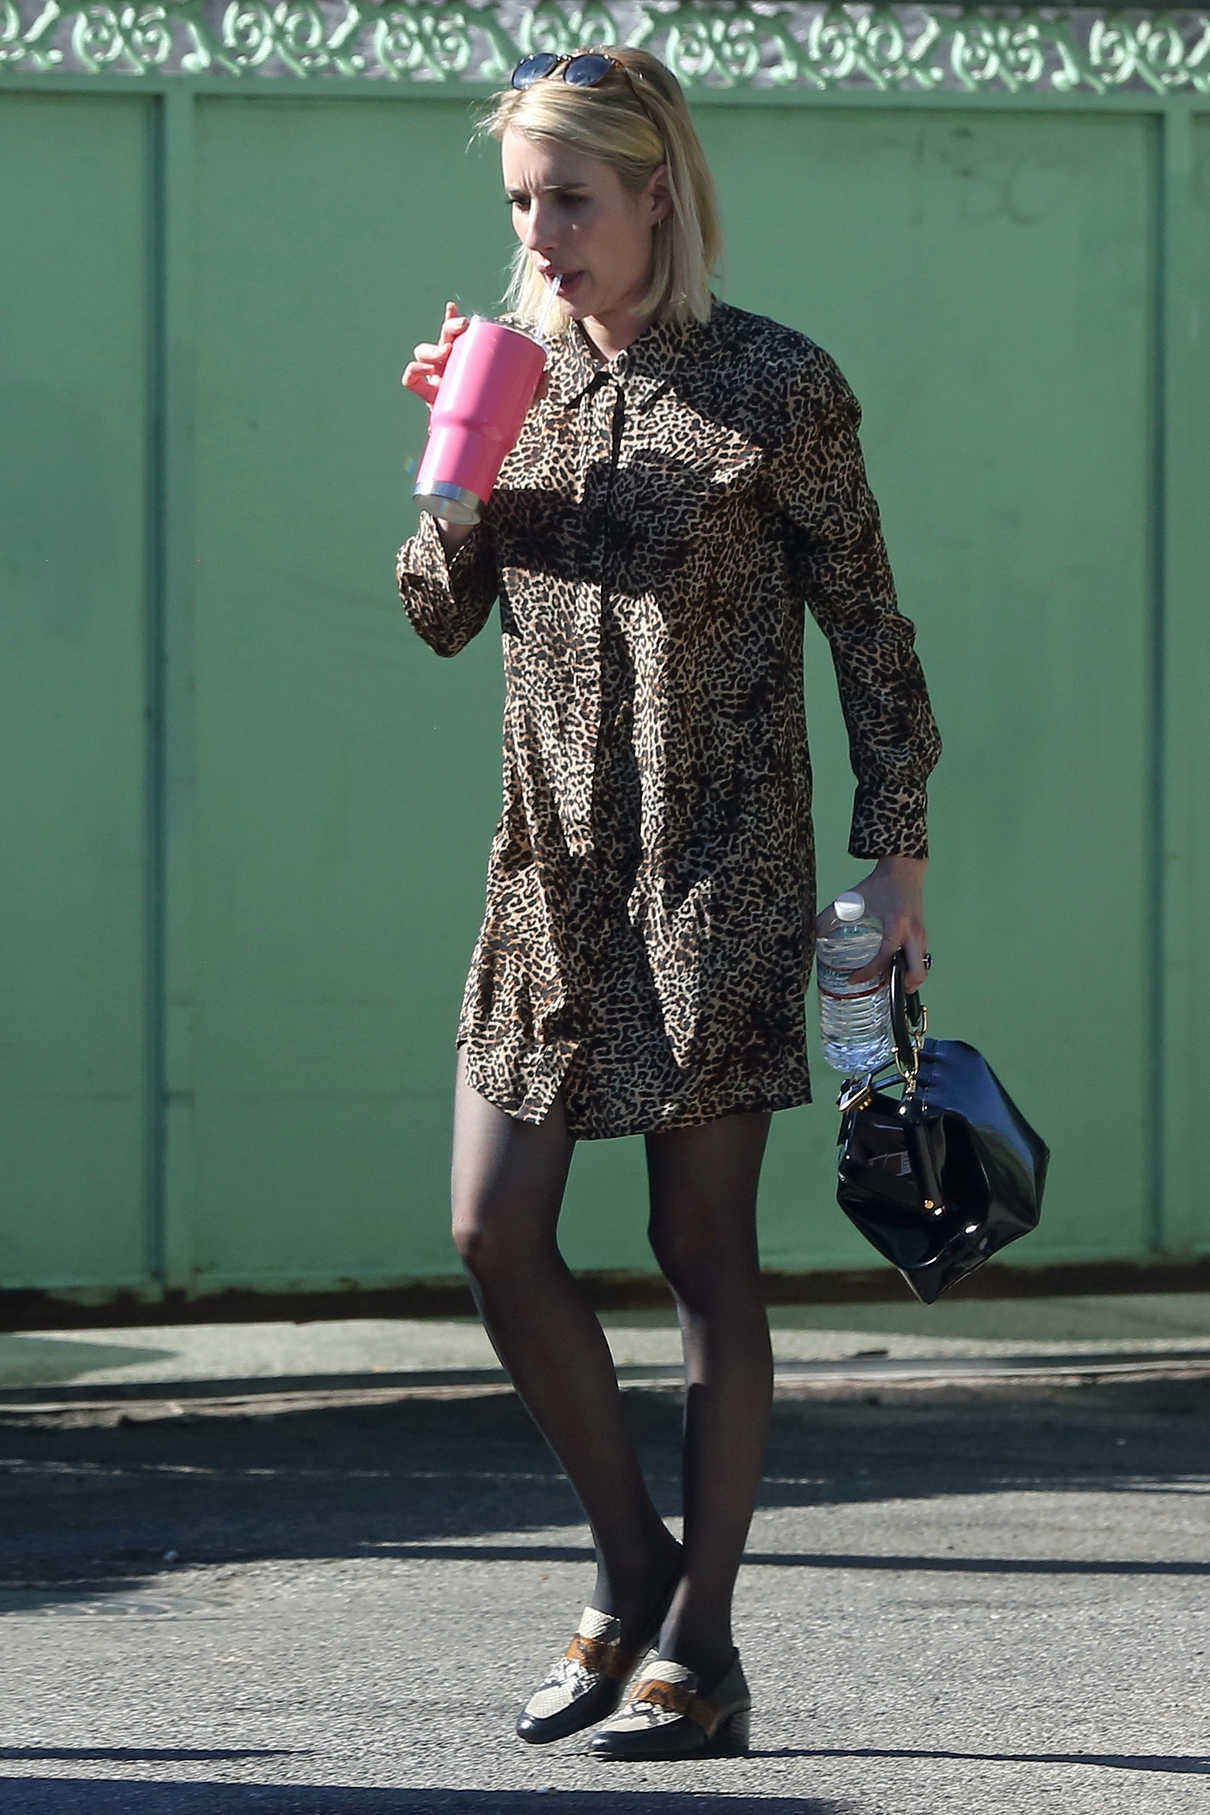 Emma Roberts in a Leopard Print Dress